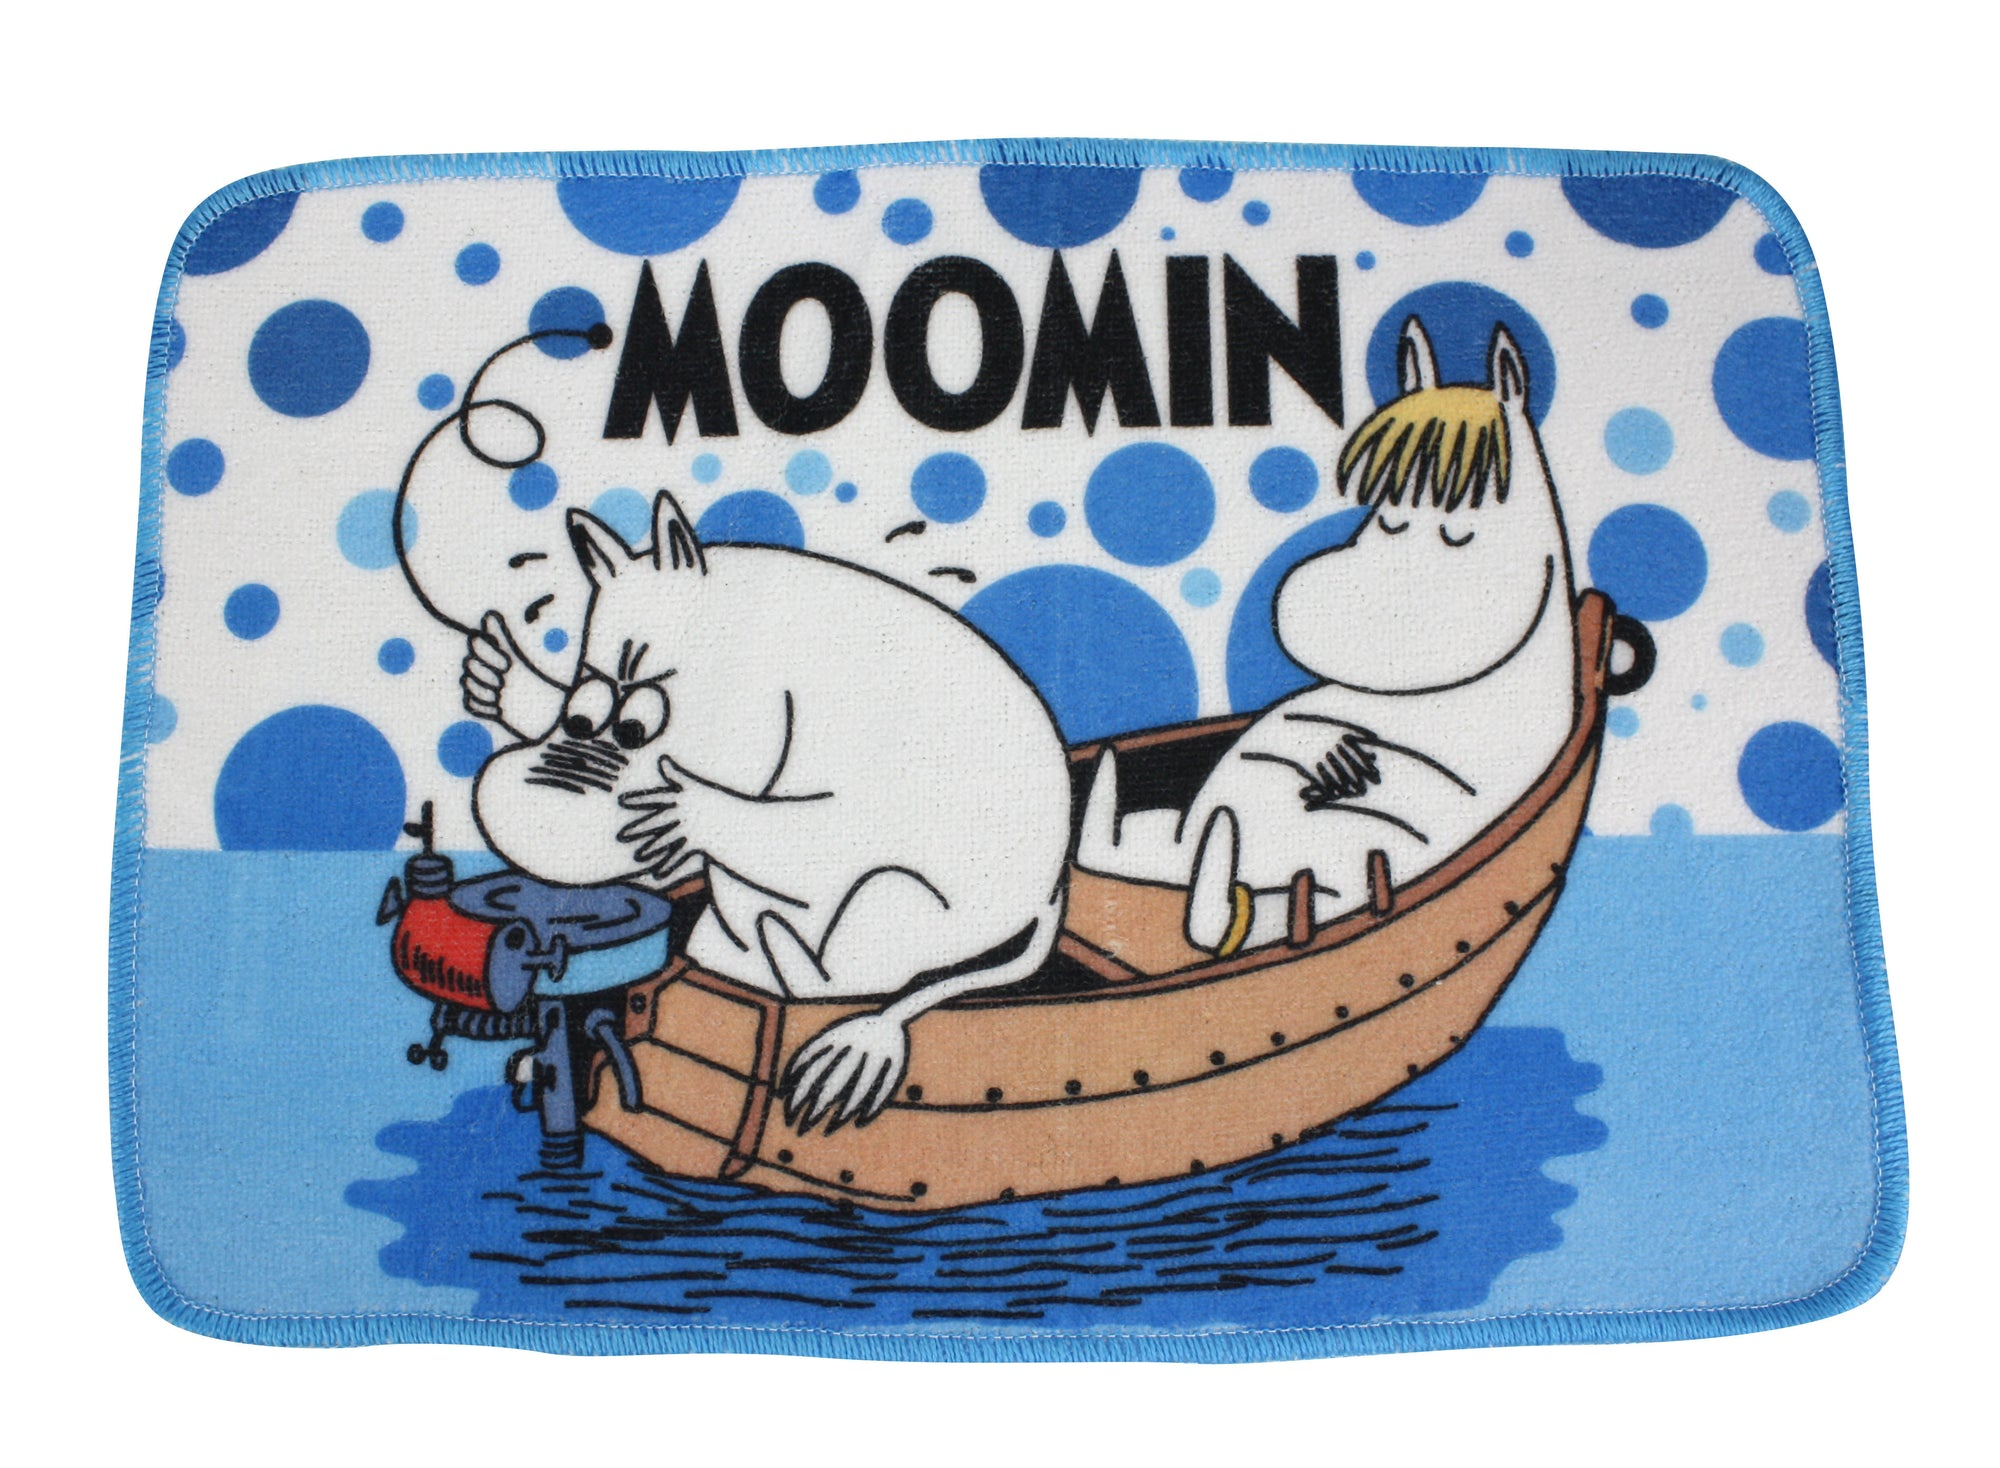 Moomin Bath Mat, Floor Mat 35cm x 50cm. All at sea. - farangshop-co